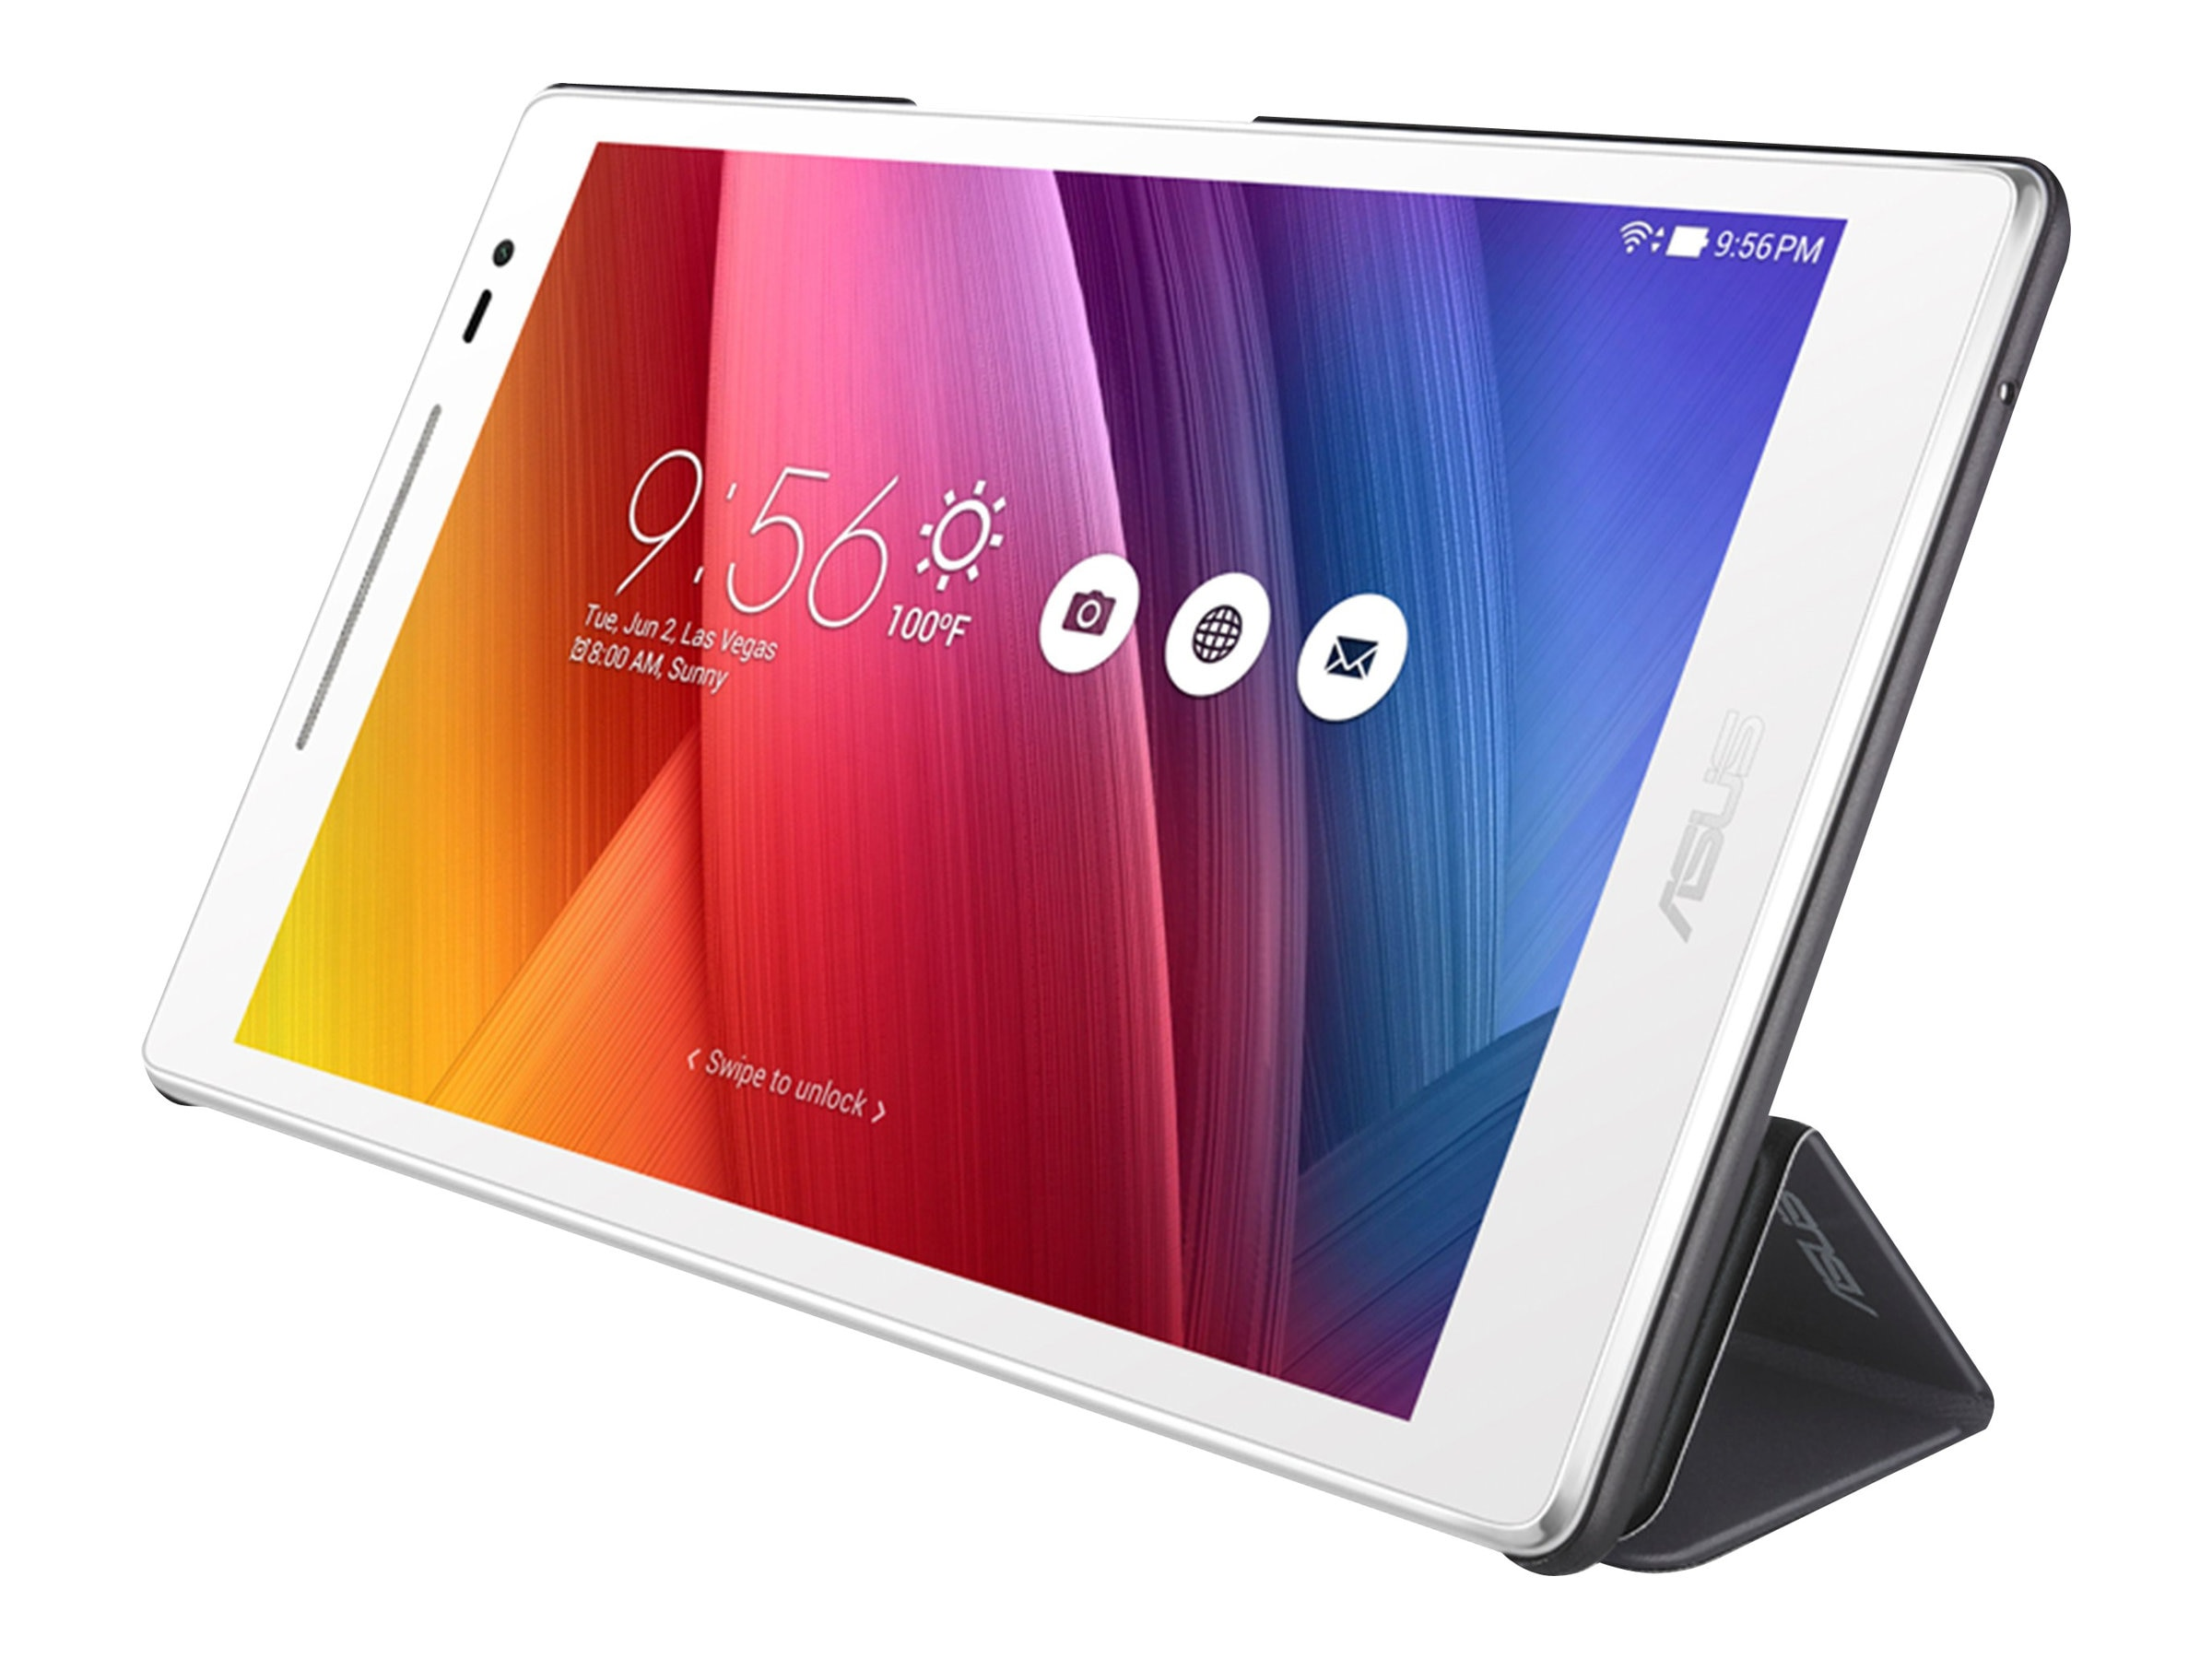 Asus Tricover for Zenpad 8.0, Black